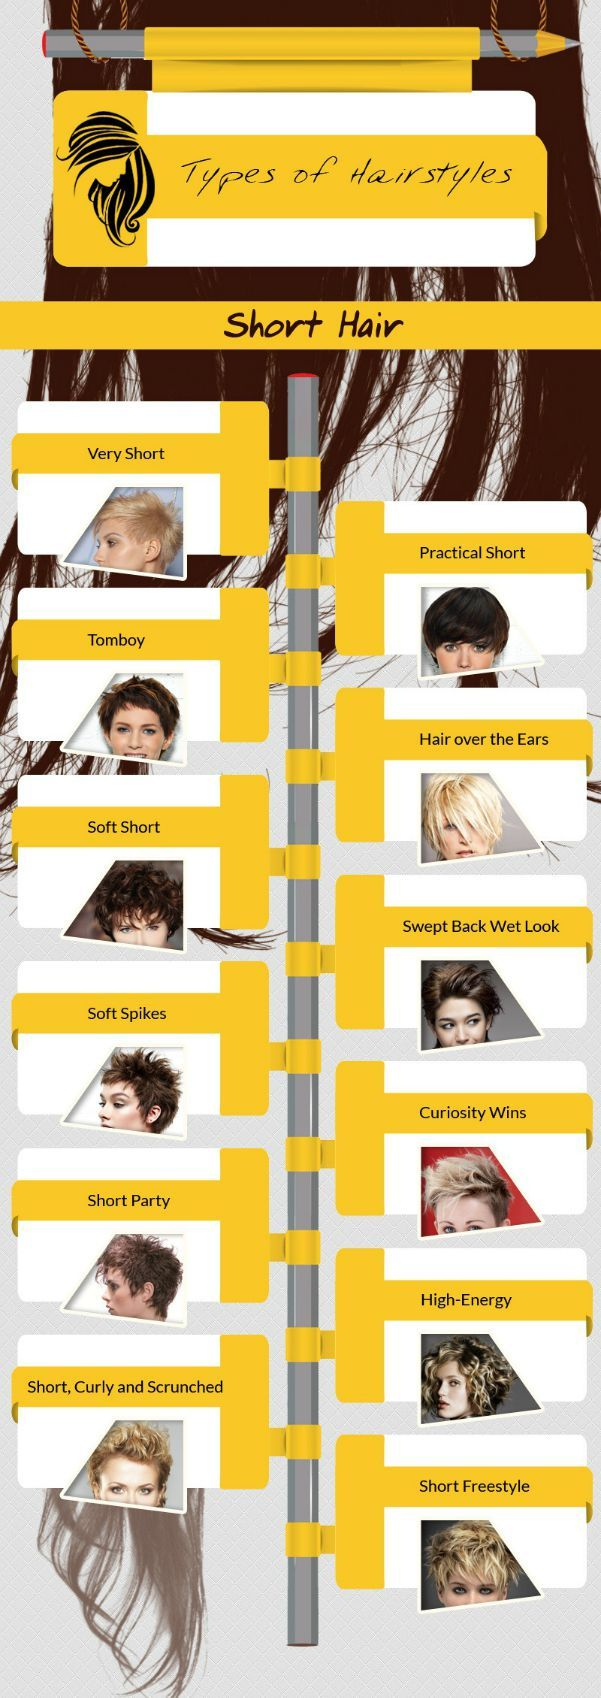 Types of Hairstyles #Infographic #women #guide